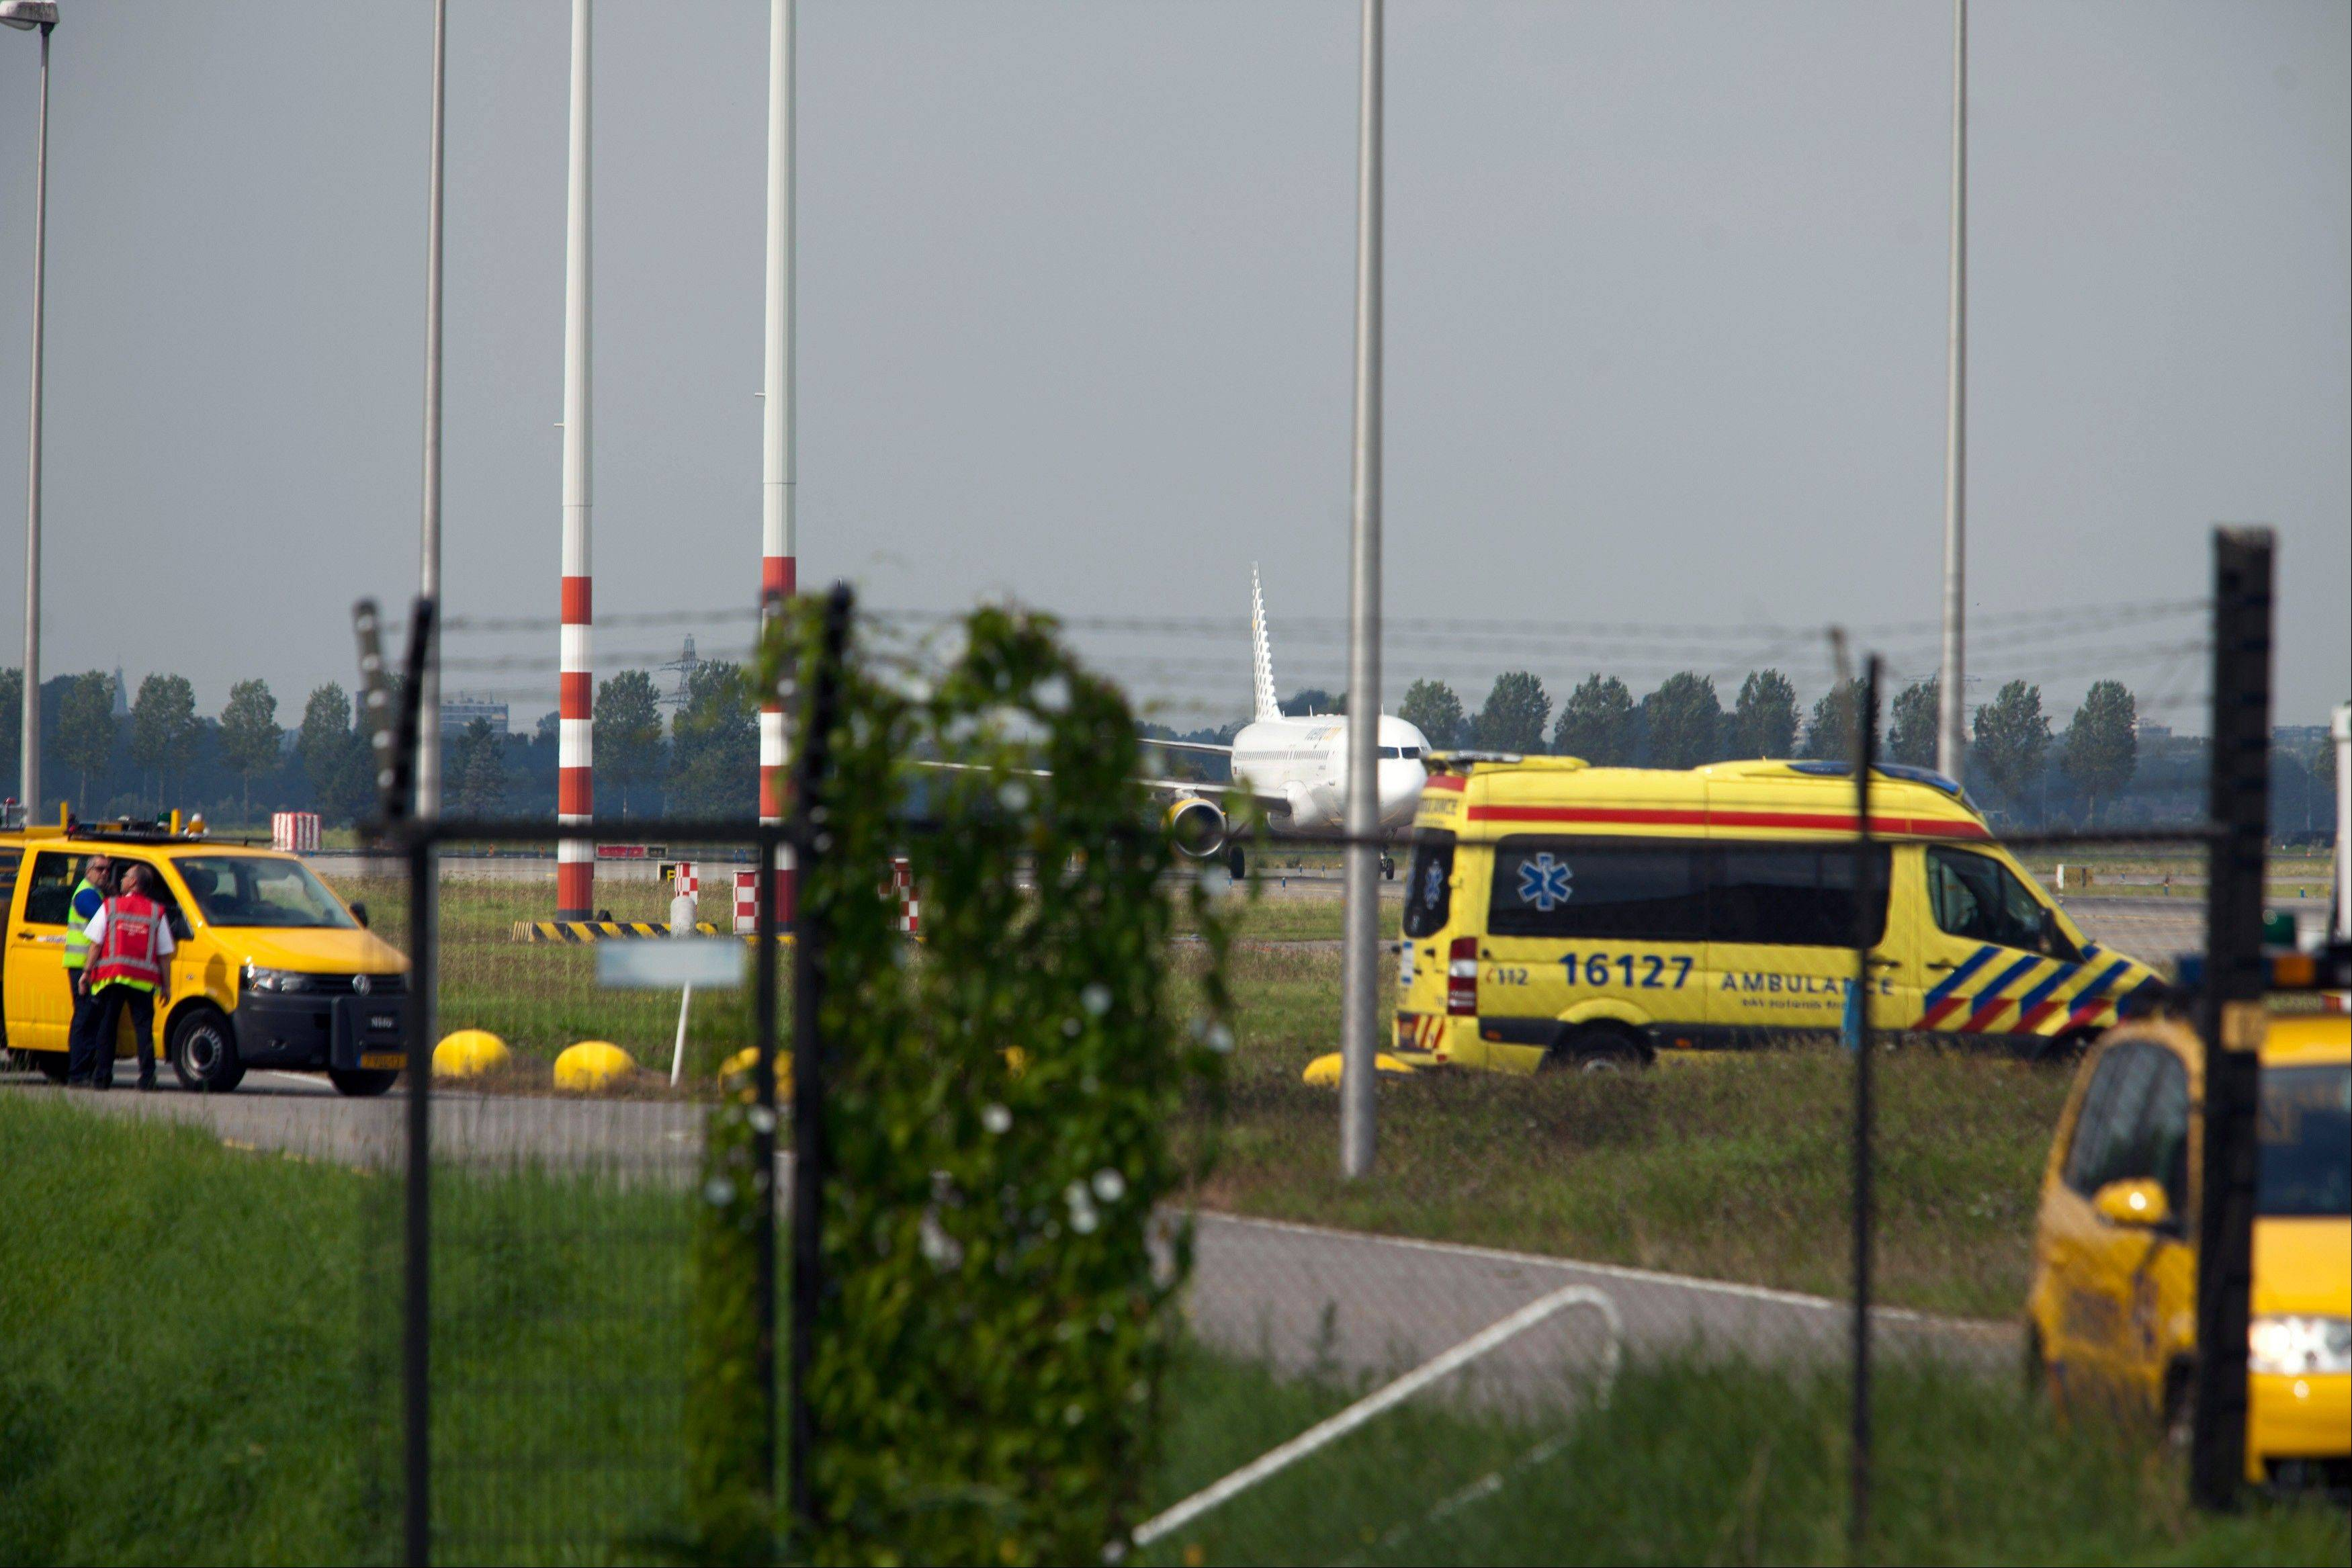 An ambulance is seen in front of a passenger plane from Malaga in Spain at Amsterdam's Schiphol Airport, Netherlands, Wednesday, Aug. 29, 2012. A news website reported that the plane was escorted to Schiphol on Wednesday by two F16 fighter jets and that the plane is from carrier Vueling. Dutch media now say the passenger plane from Spain to Amsterdam was not hijacked.